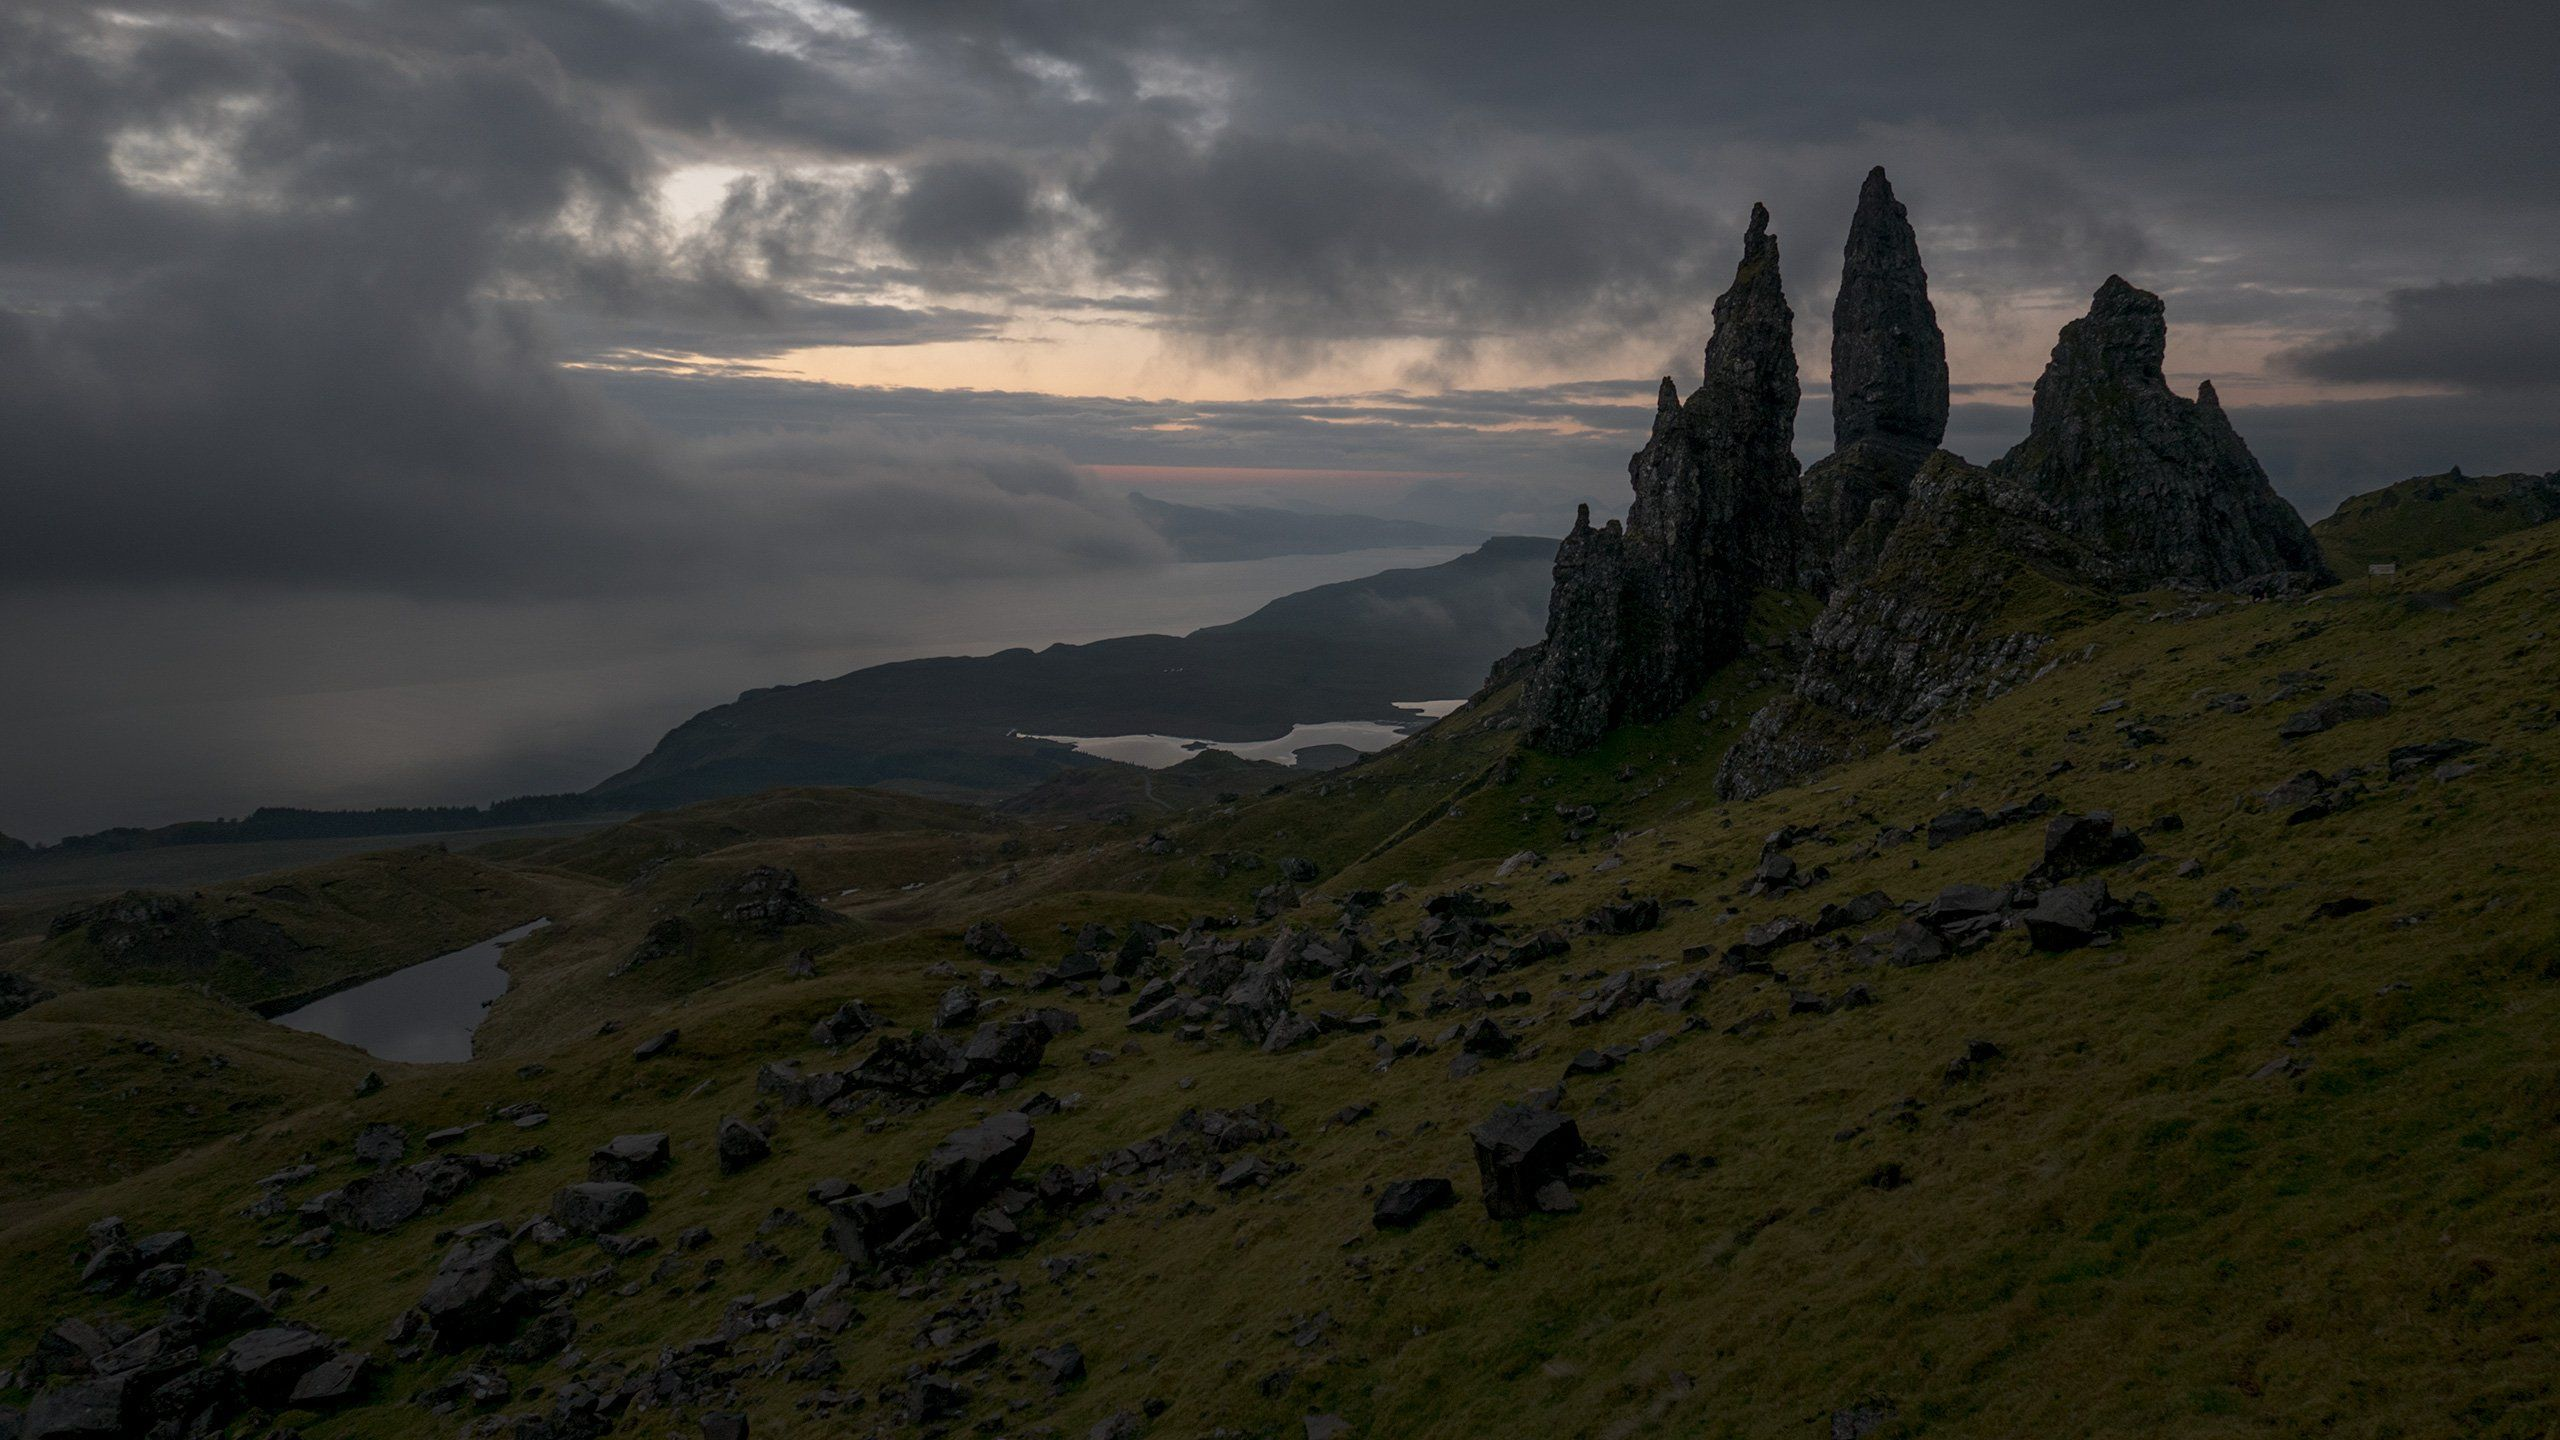 got-up-before-dawn-a-few-days-ago-to-hike-up-to-the-old-man-of-storr-in-scotland-for-sunrise-wallpaper.jpg (2560×1440)